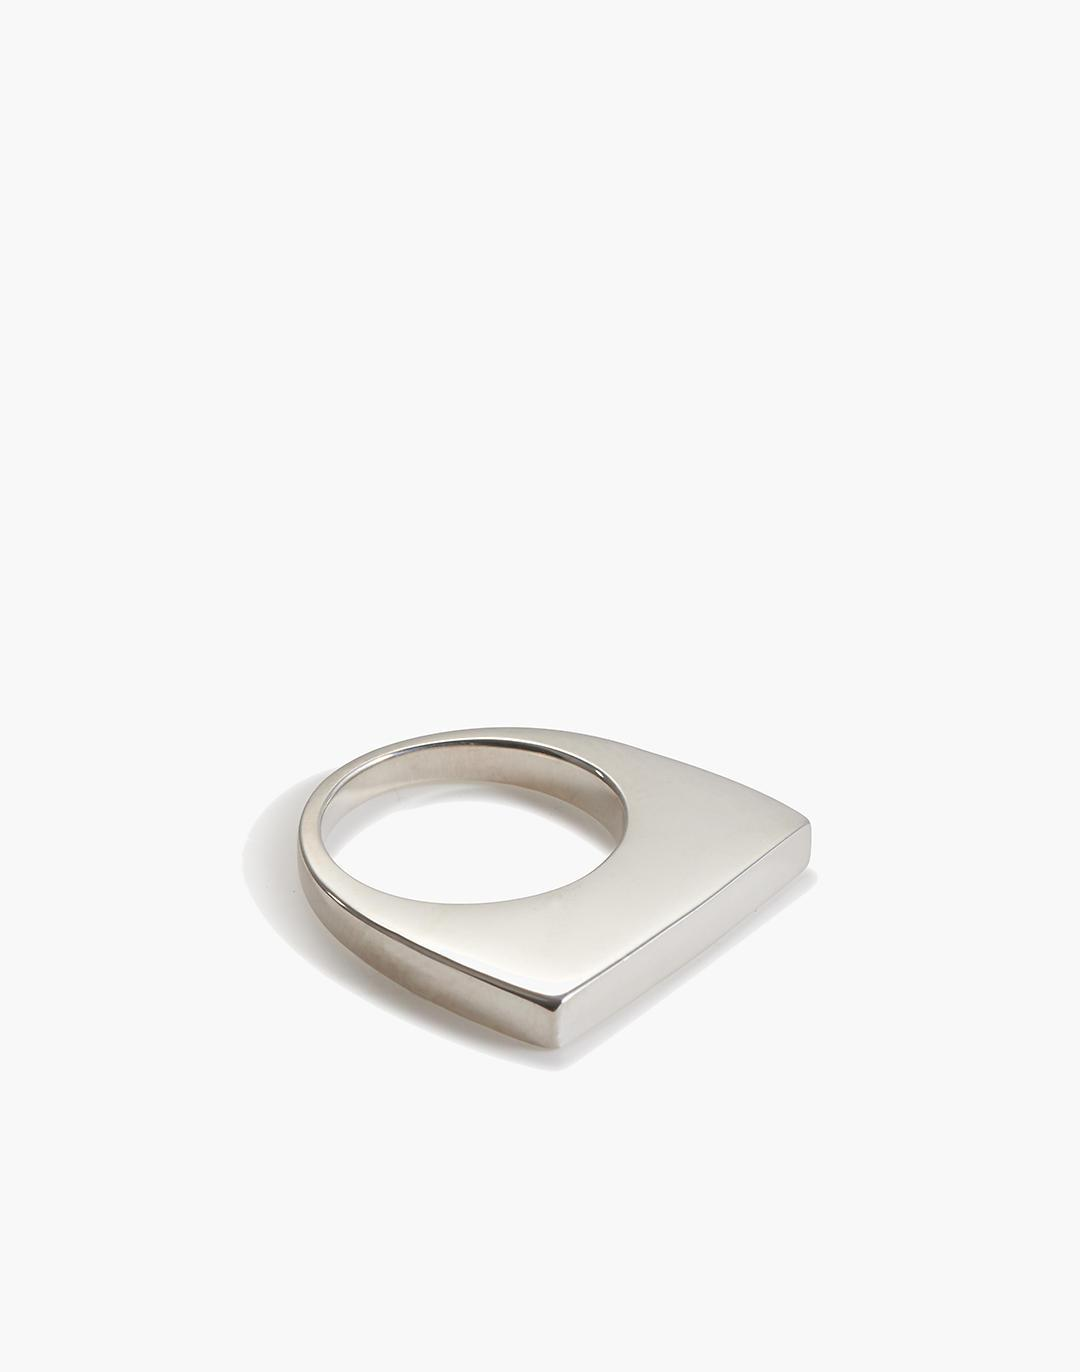 Charlotte Cauwe Studio Flat Square Ring in Sterling Silver